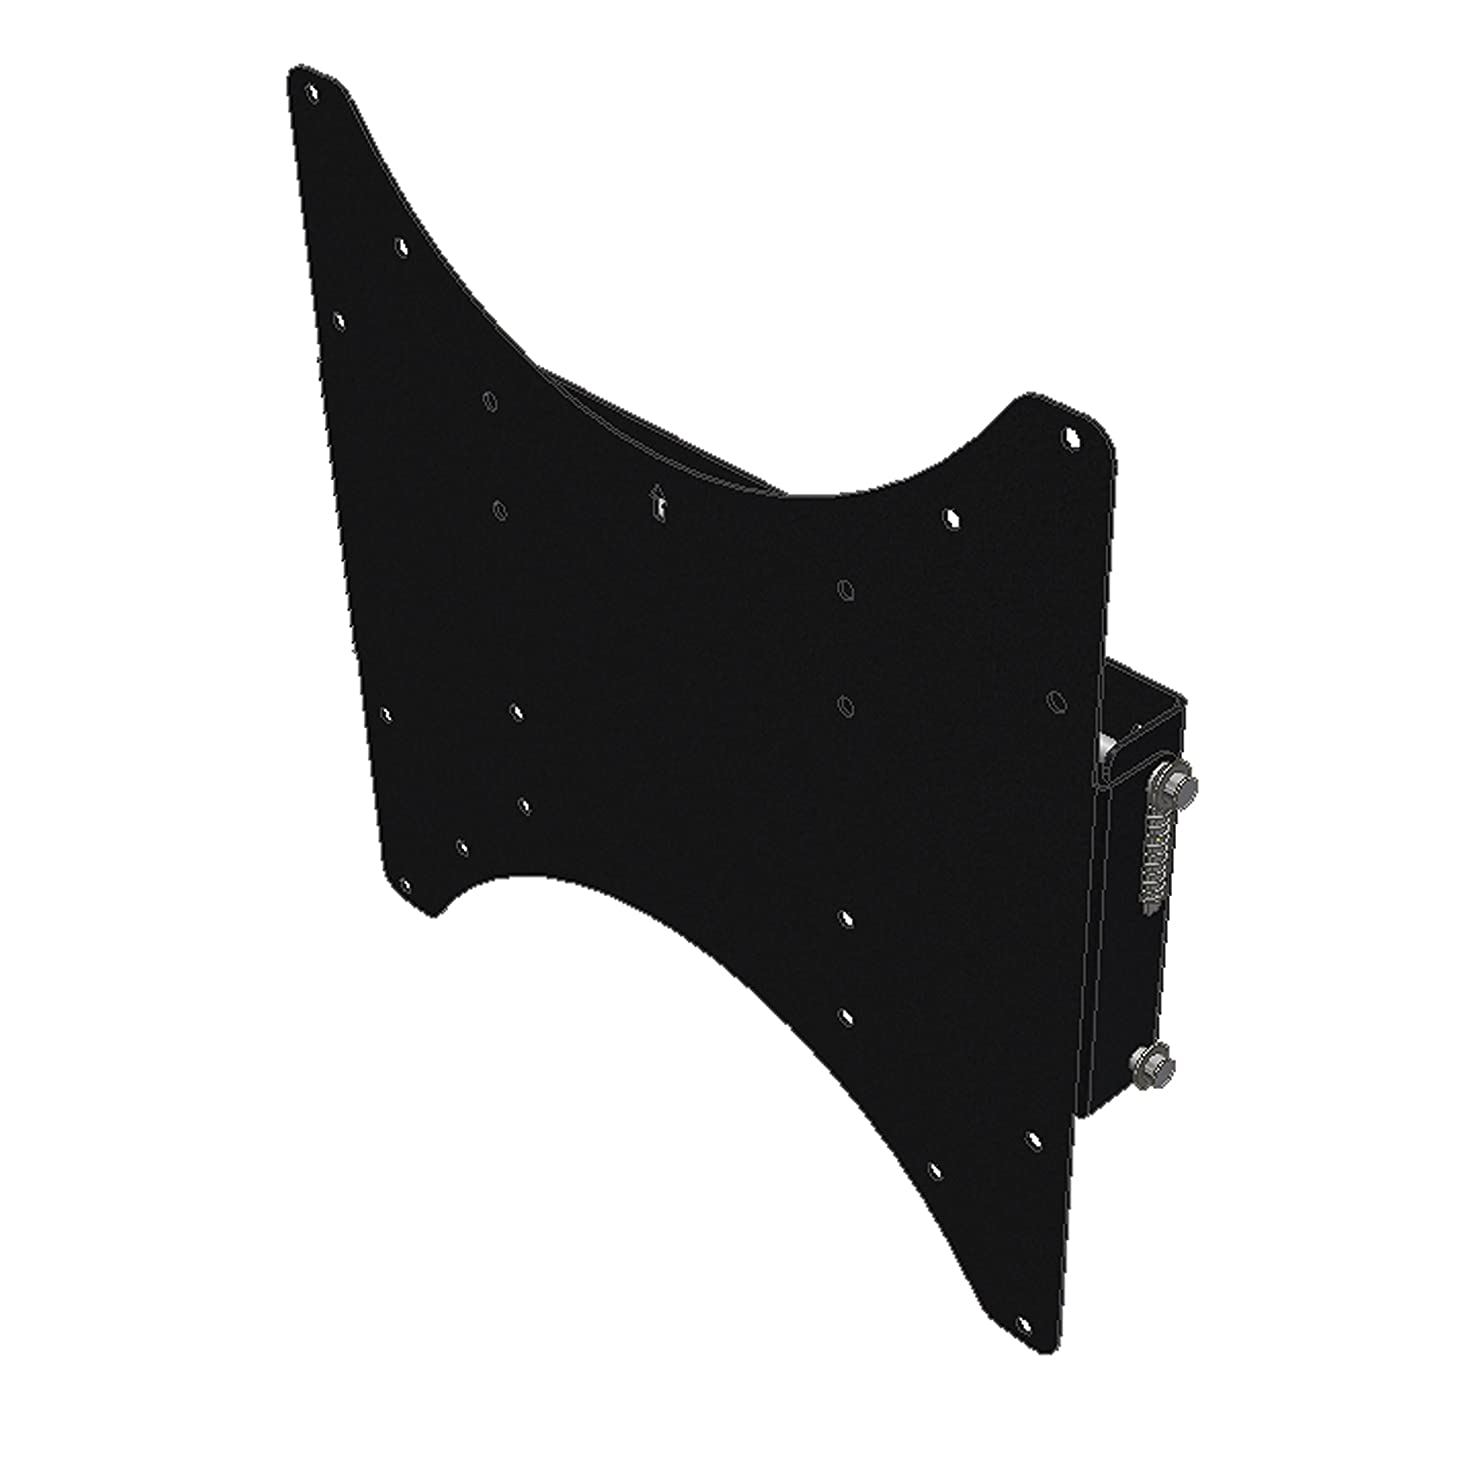 MORryde 0111.2056 TV1-048H Snap-in TV Wall Mount-Large Rigid